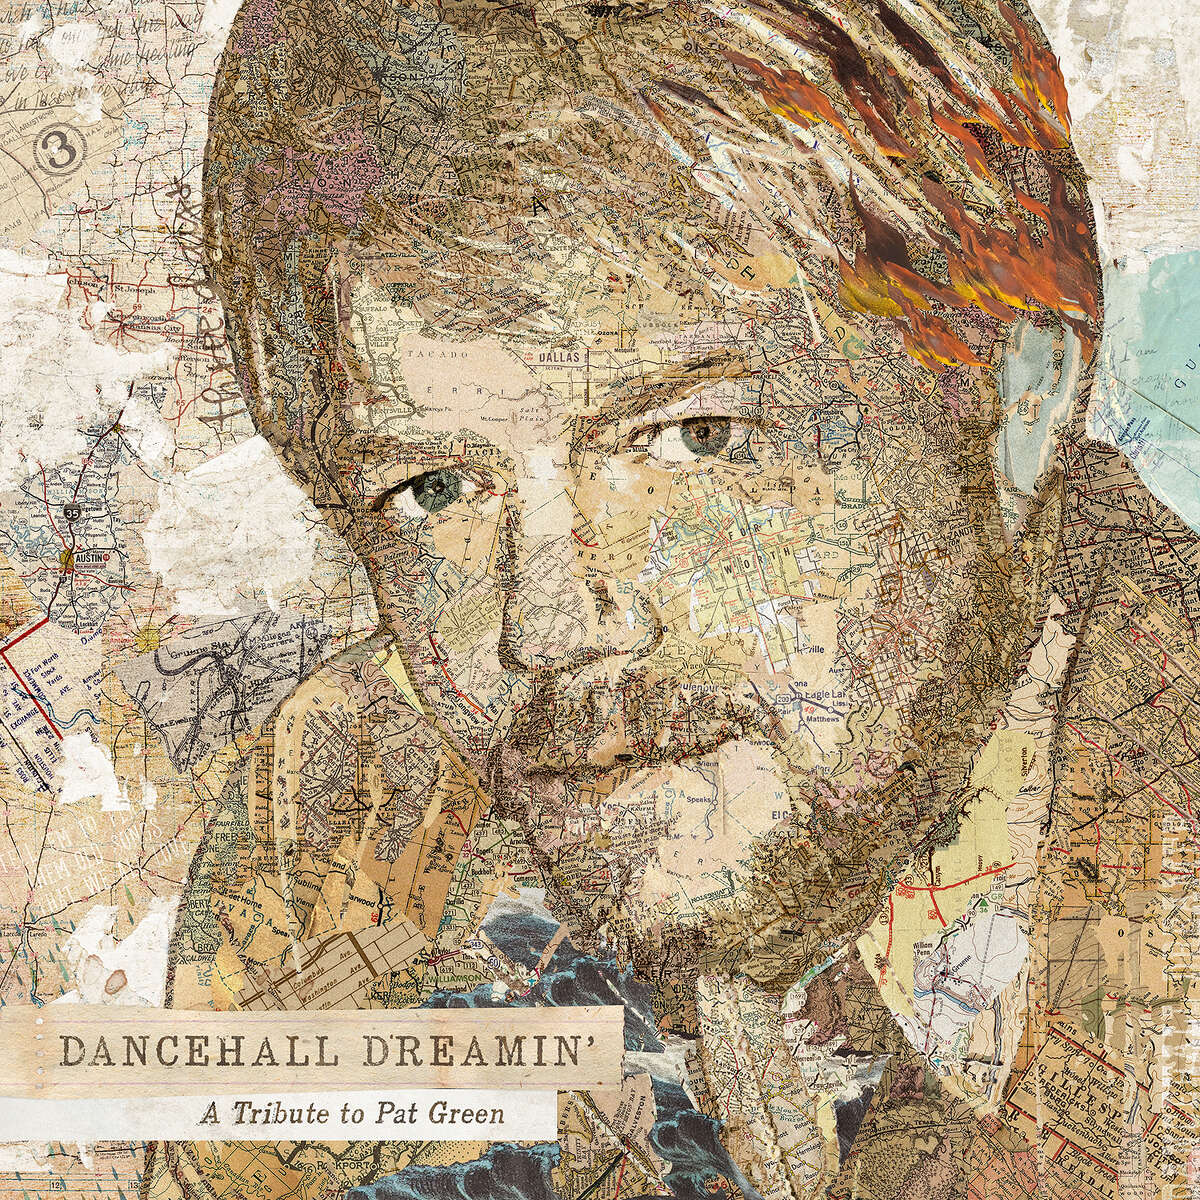 Dancehall Dreamin' - A Tribute to Pat Green features several Texas country artists covering Green's songs.